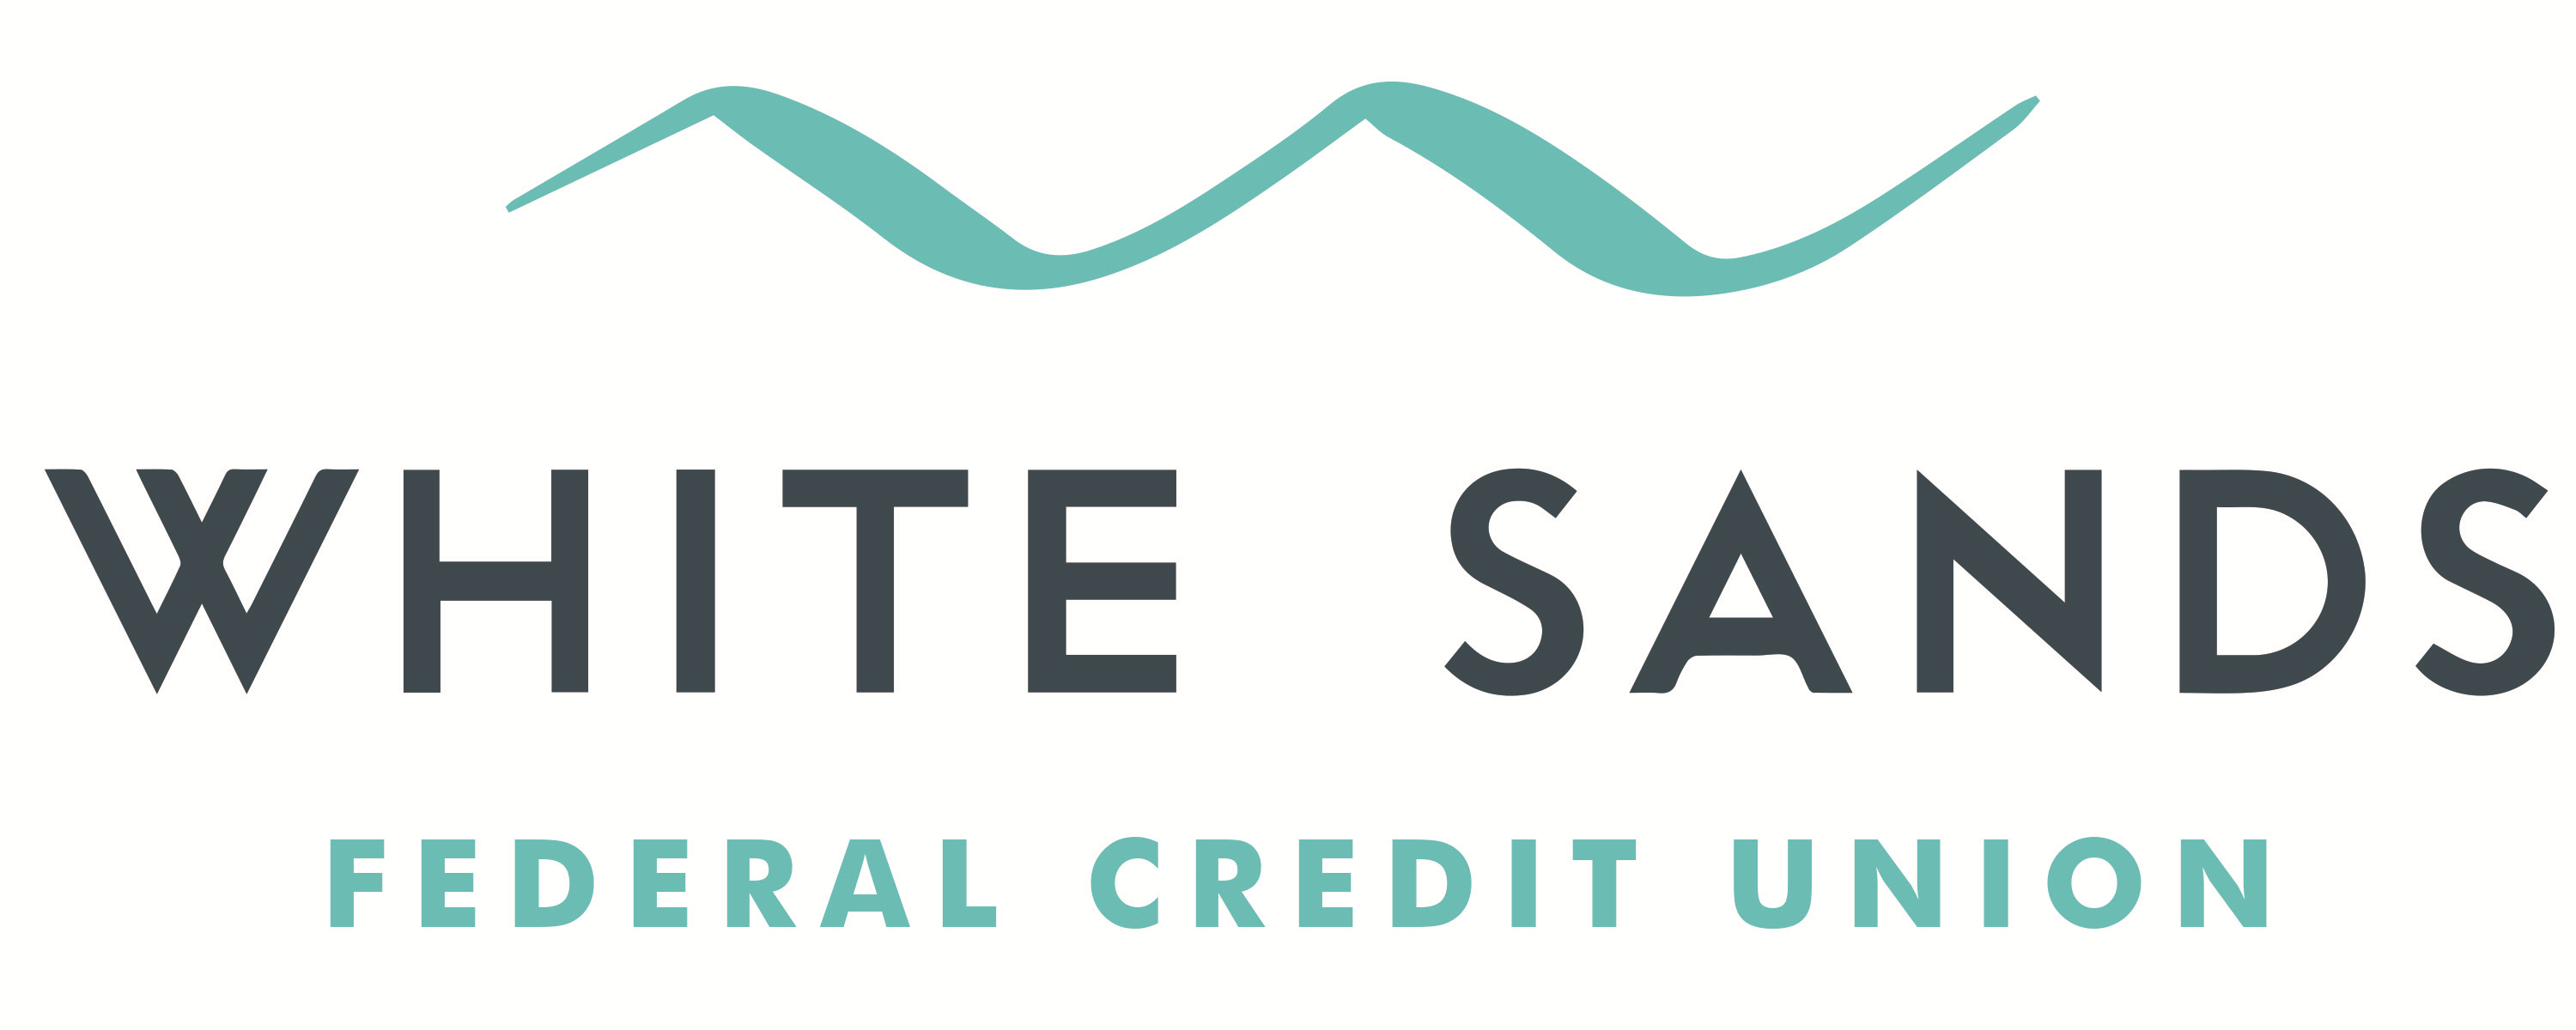 White Sands Federal Credit Union Mortgage Loan Manager